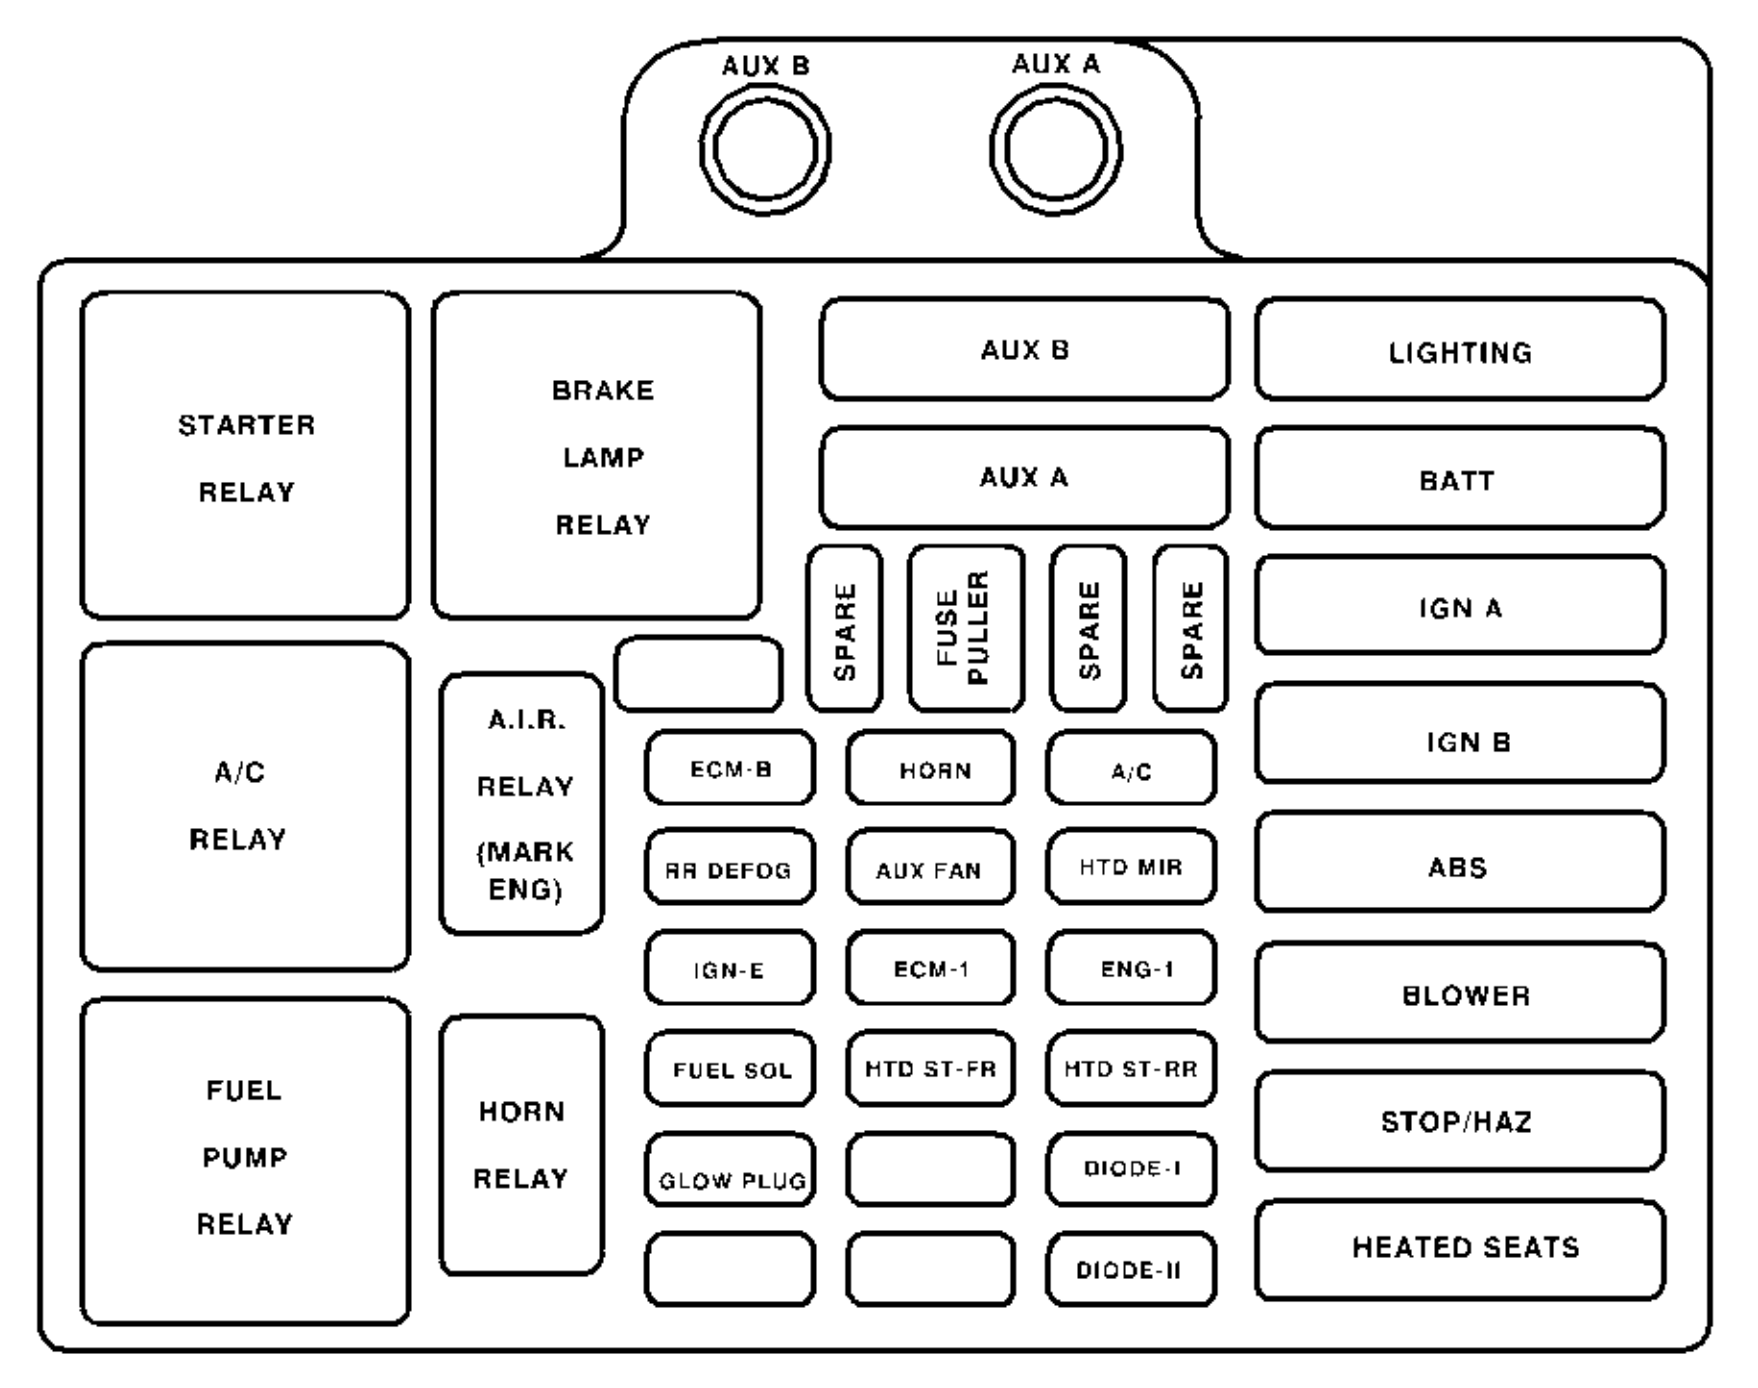 hight resolution of 1998 chevy silverado fuse box diagram wiring diagram review 2002 chevy silverado 1500 fuse box diagram